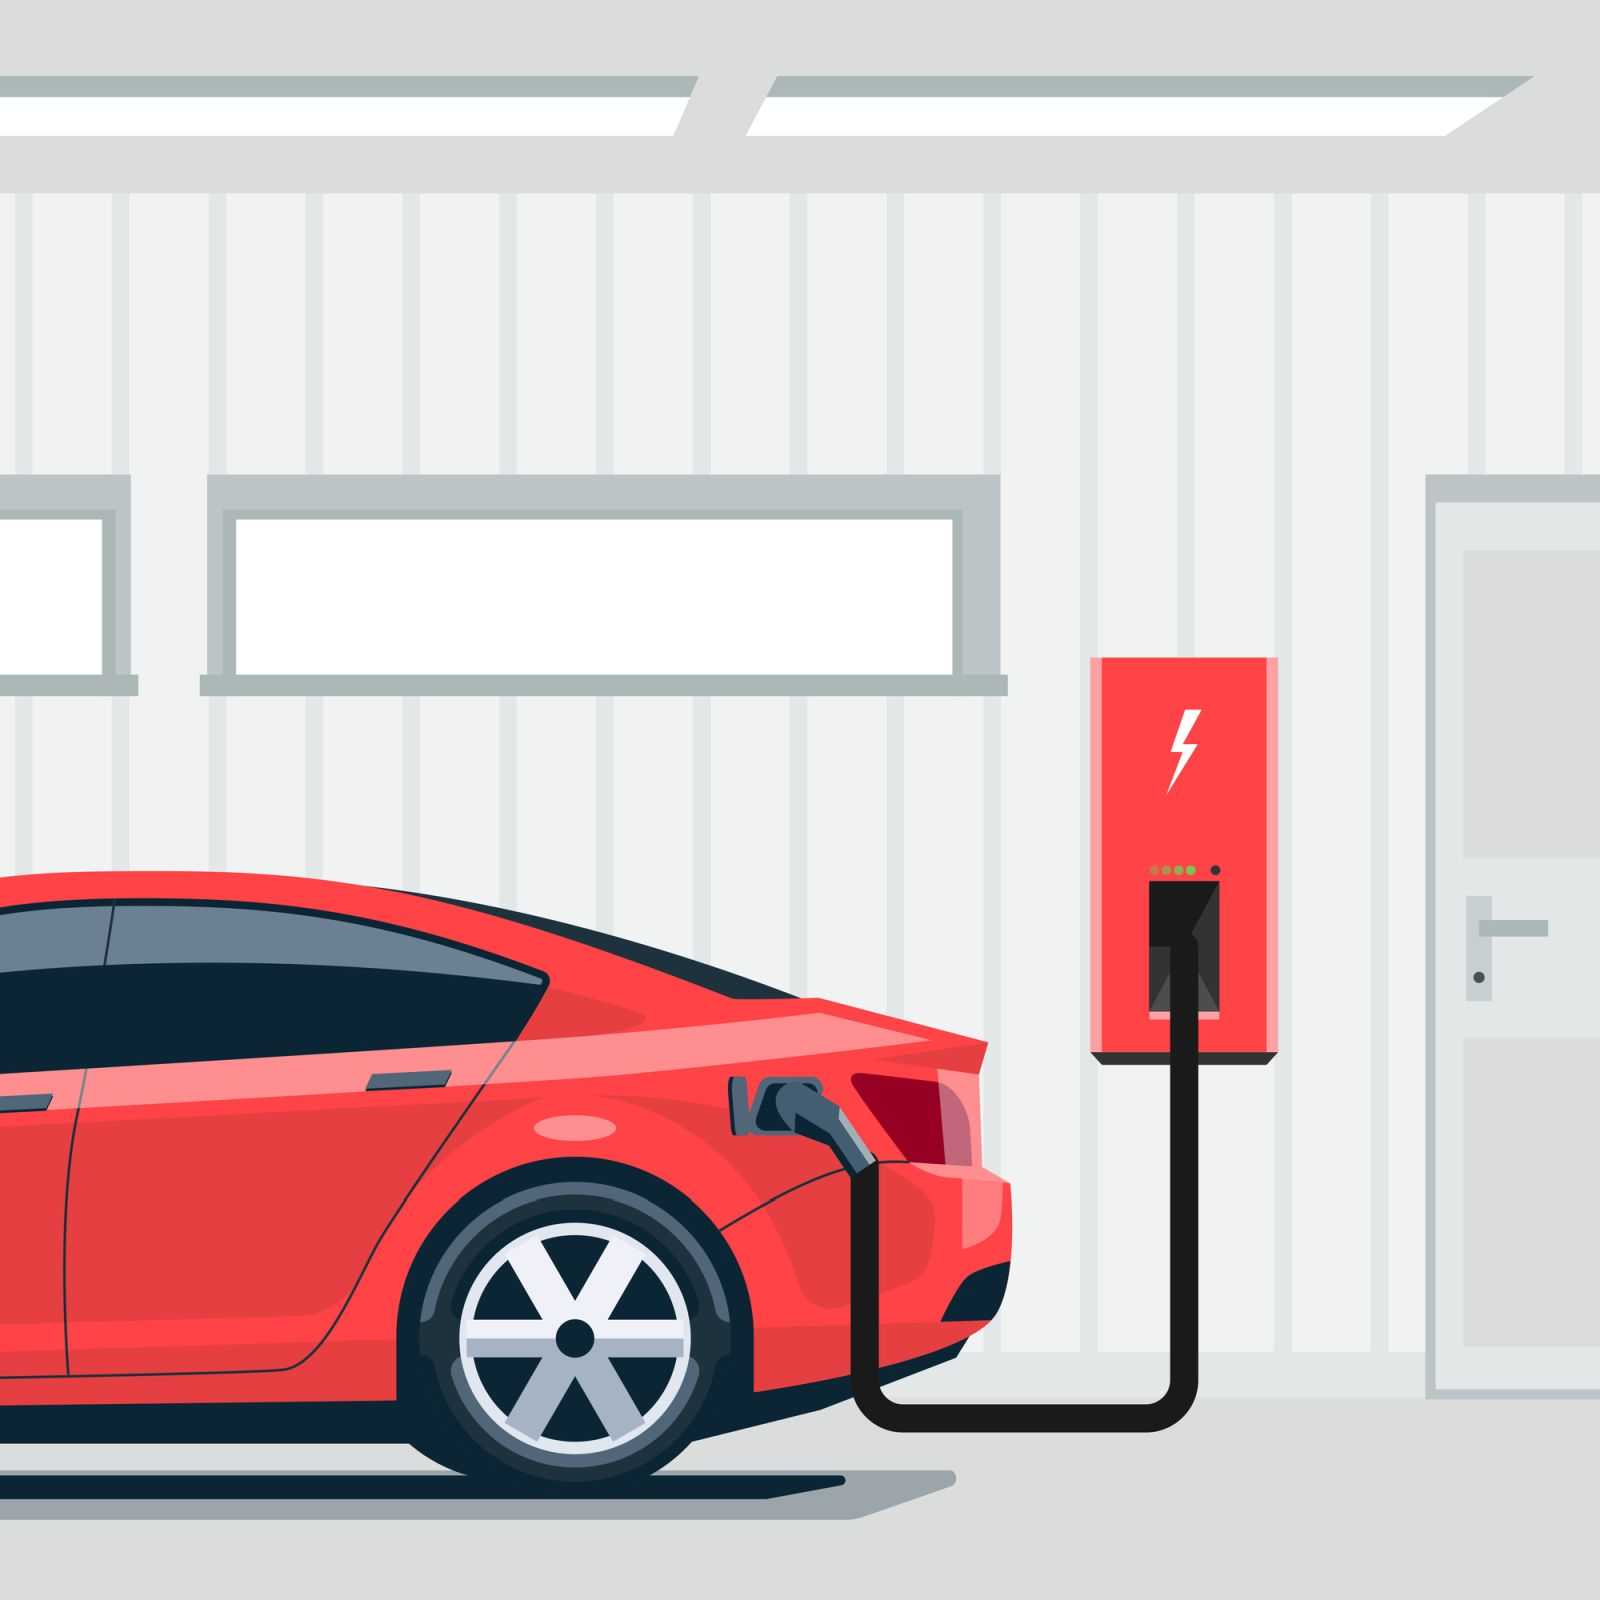 Electric Car Charging at Home in Garage